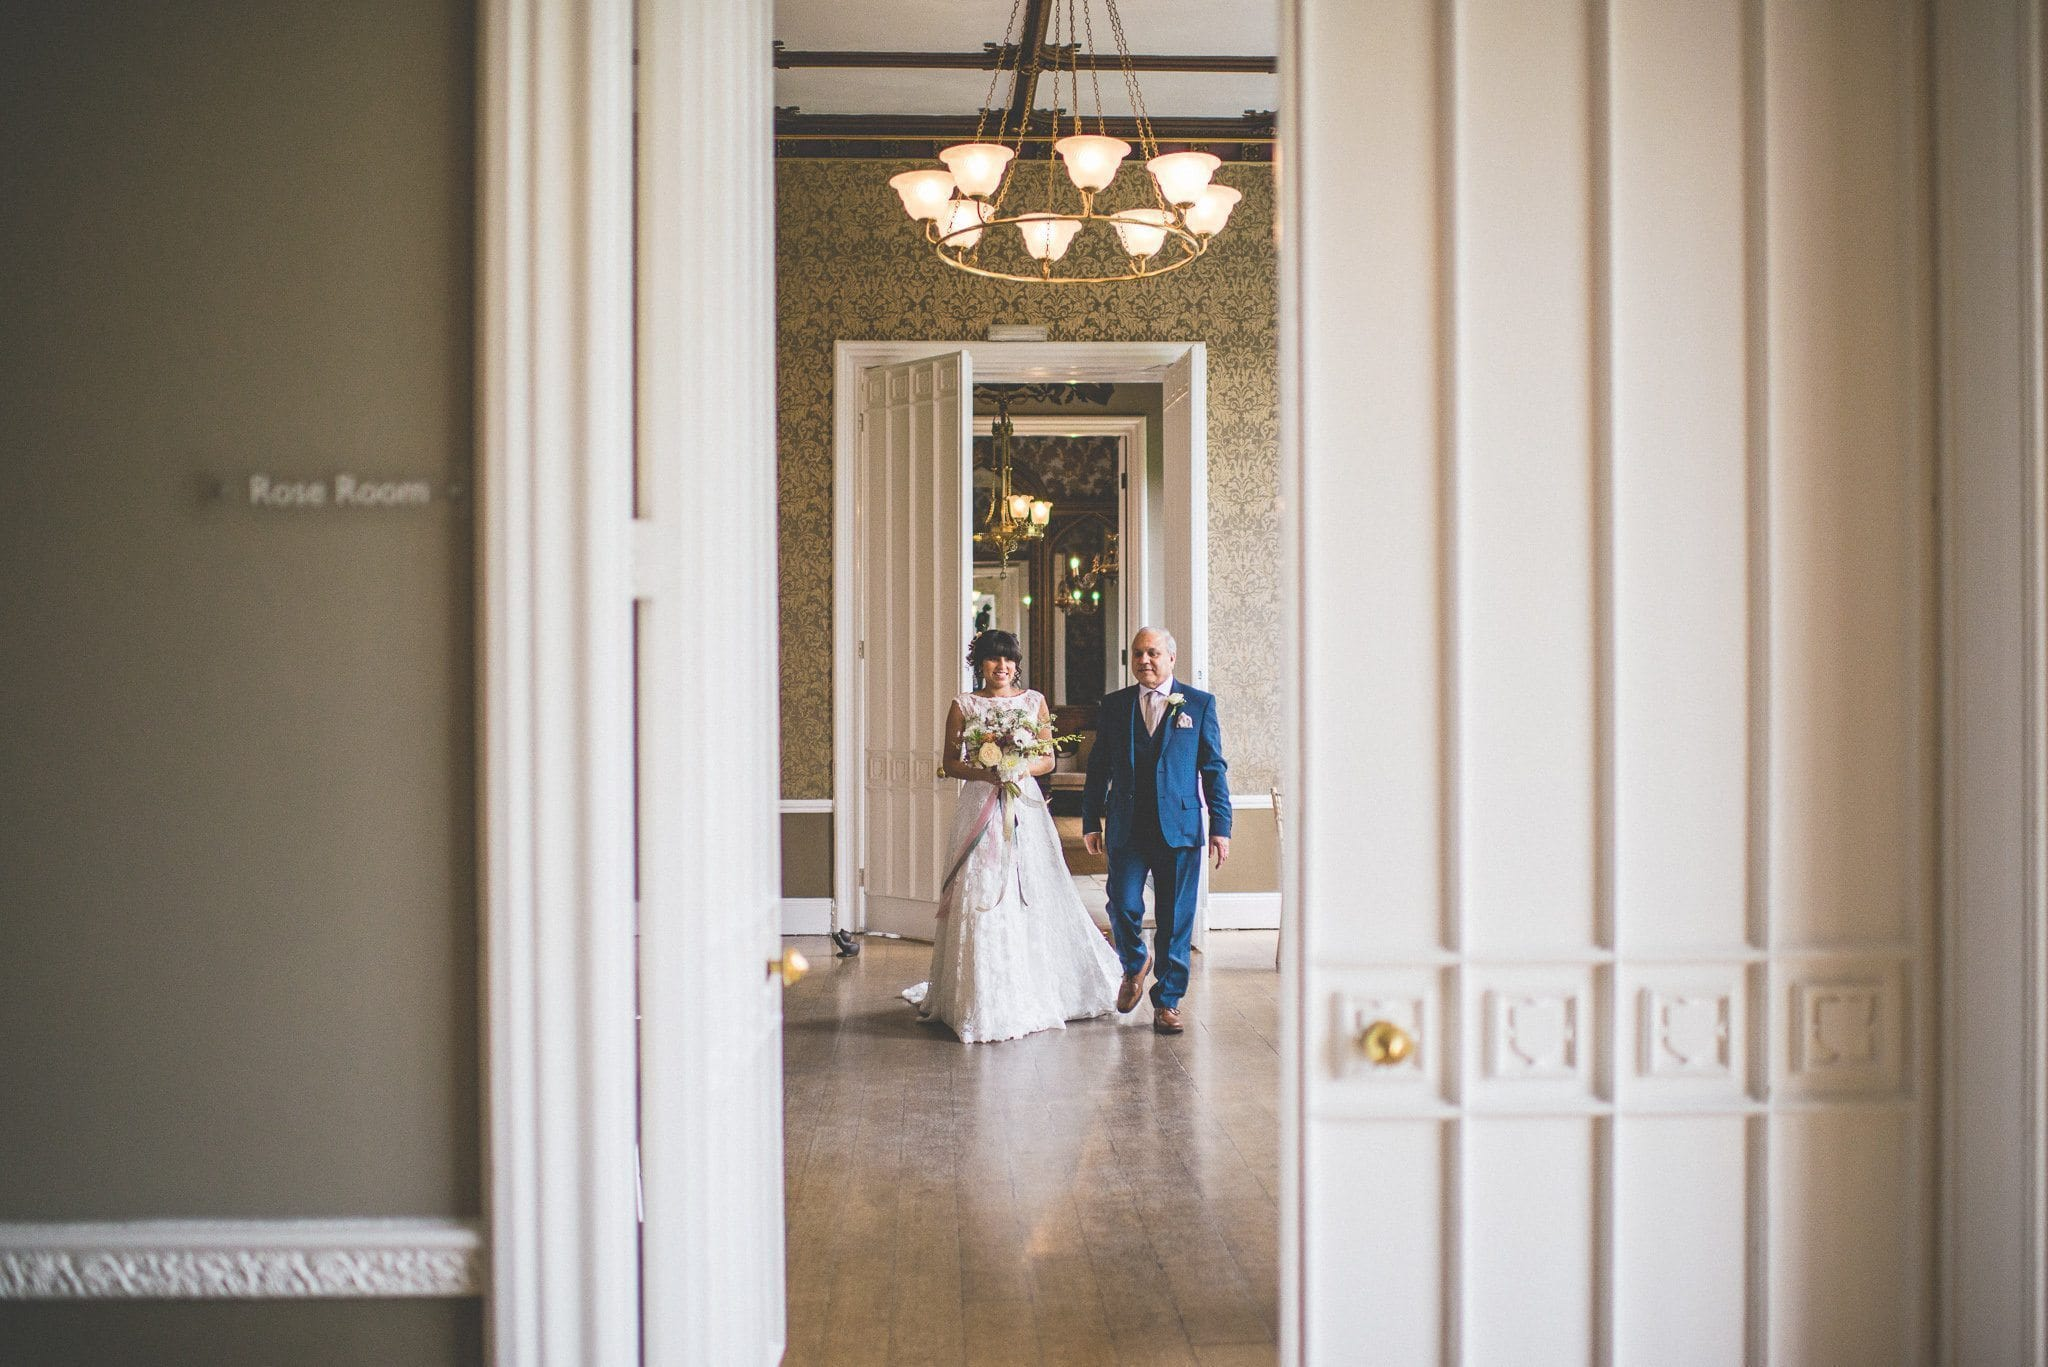 A shot through the door as bride Jasmin crosses to enter the ceremony room with her father. She wears a lace dress and carries a bouquet tied with colourful ribbons